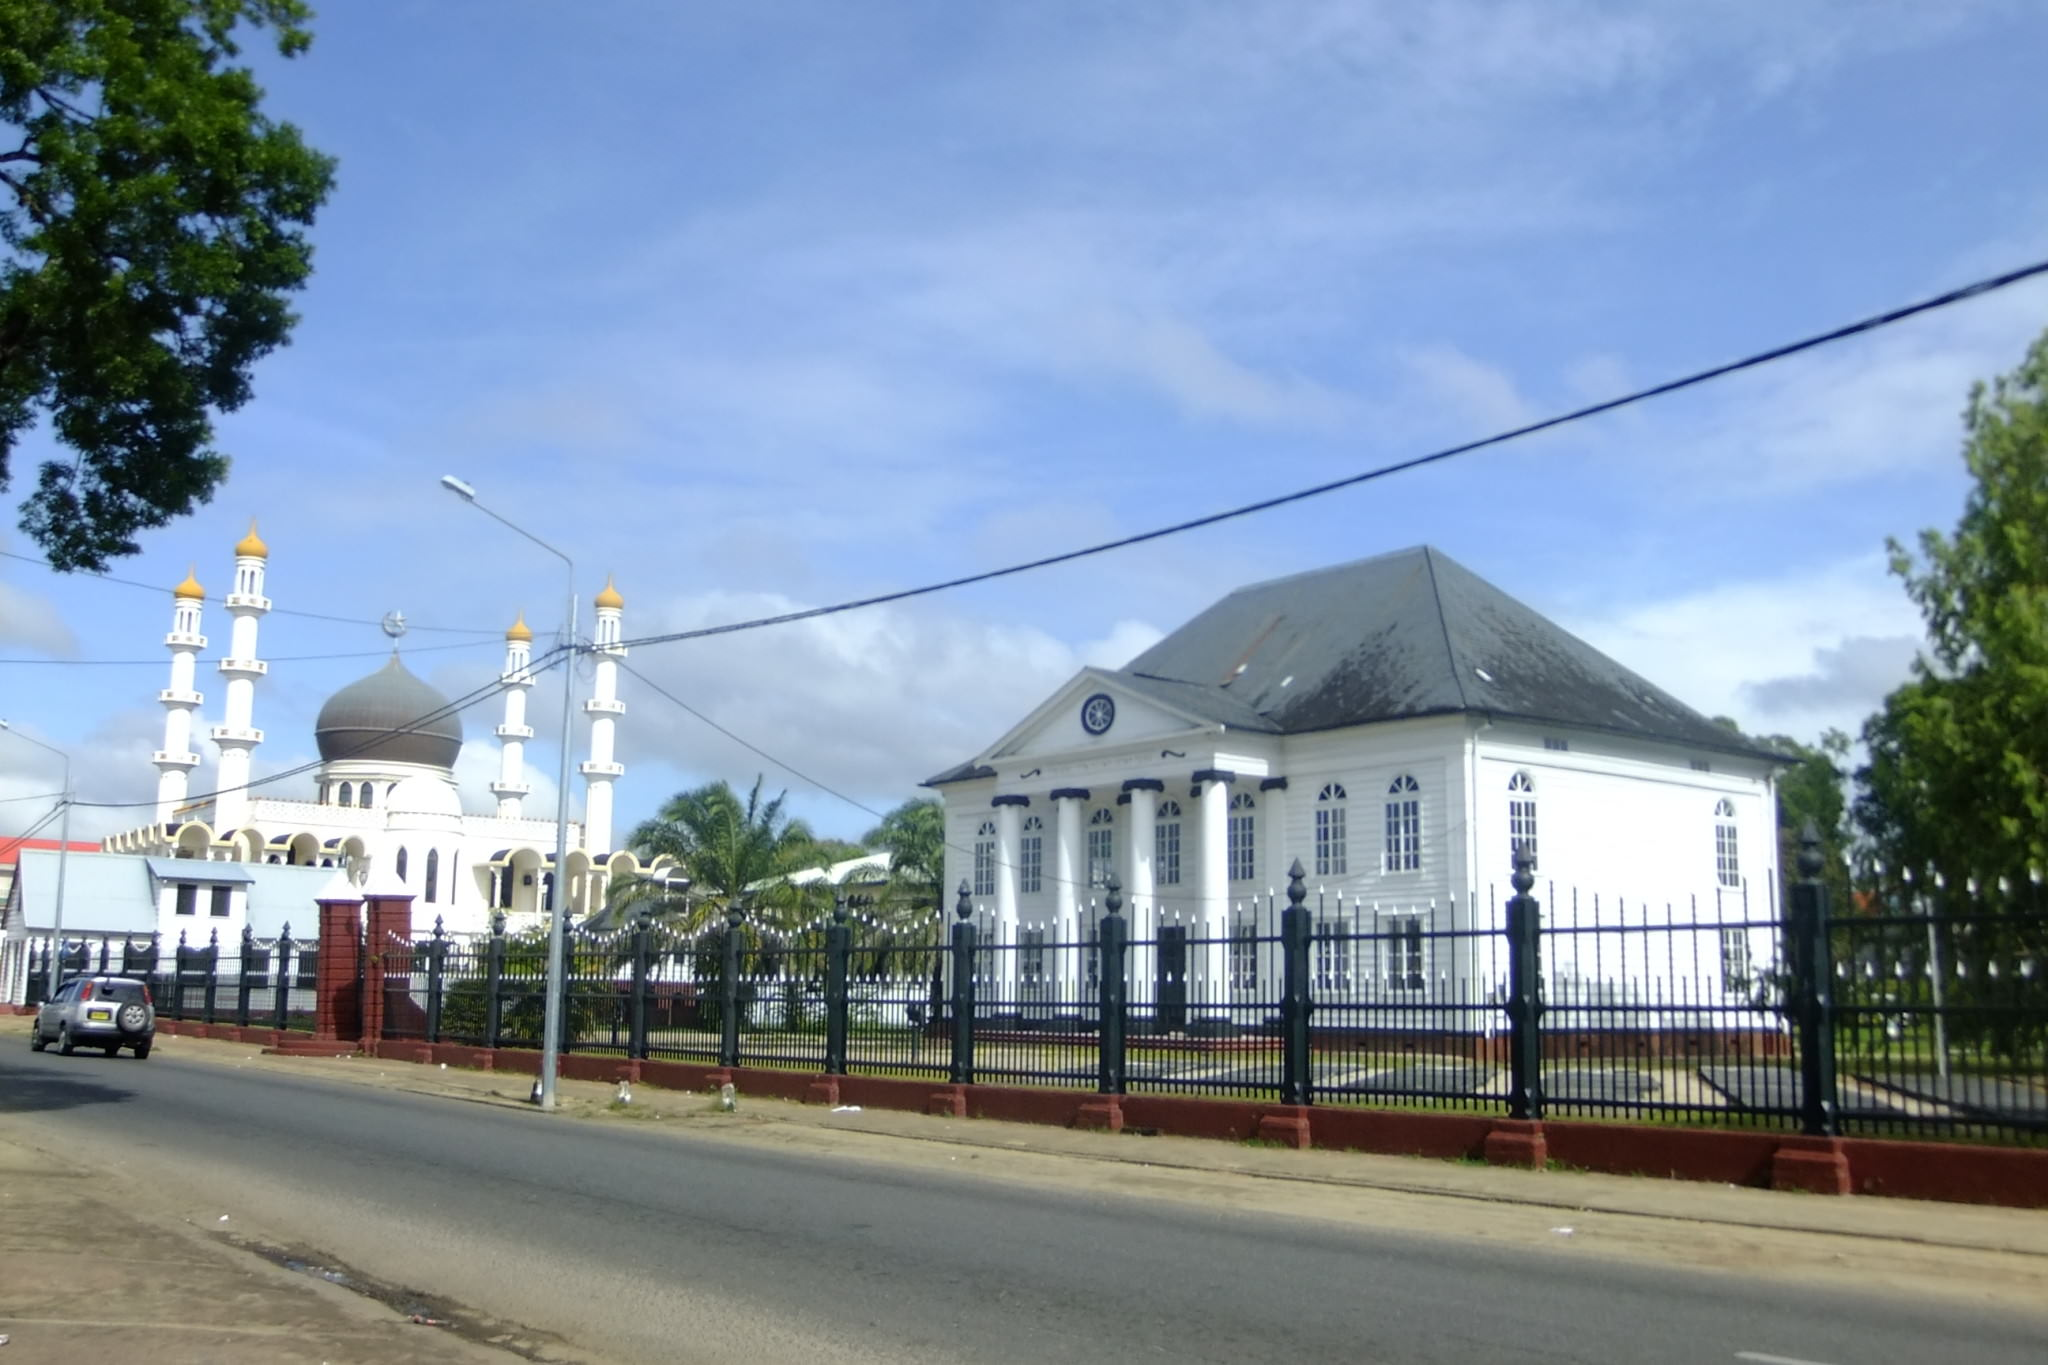 Synagogue and Mosque side by side in Paramaribo Suriname